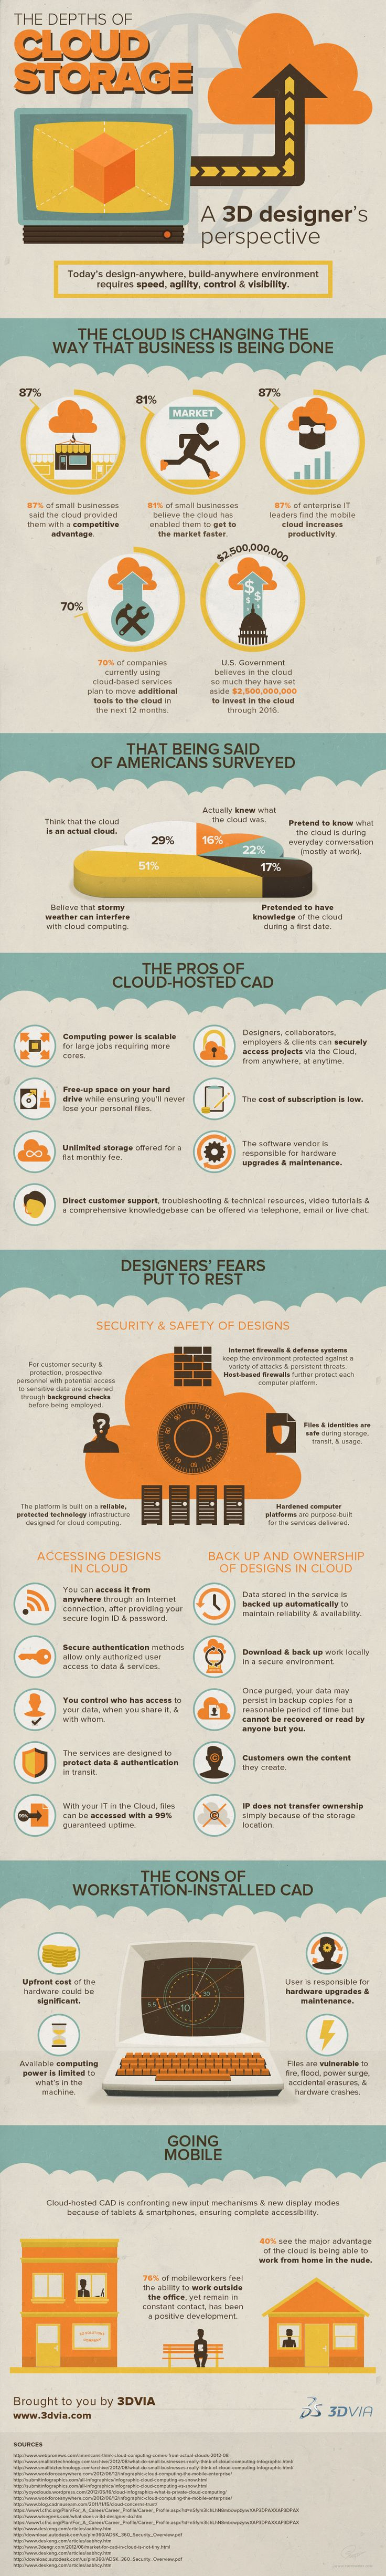 Infographic about the advantages of cloud computing. Made through Infoglyphs to 3DVia.